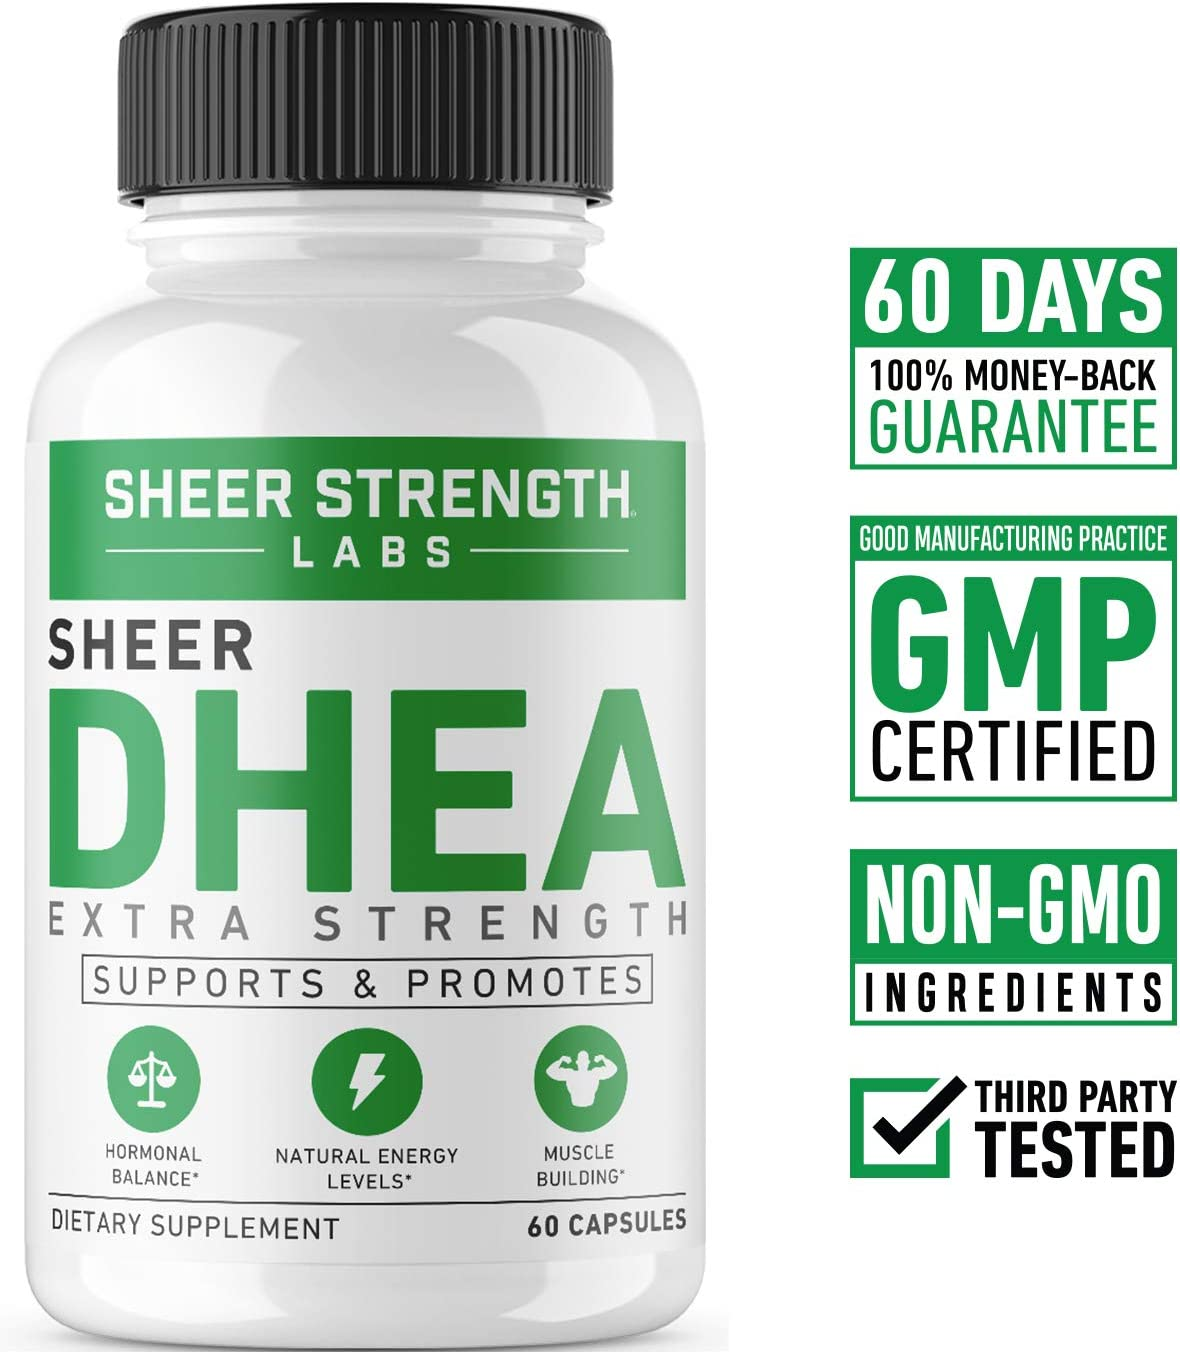 Extra Strength Dhea 100mg Supplement For Muscle Building Hormone Balance Supports Natural Energy Levels Promotes Healthy Aging In Men Women 60 Capsules Dehydroepiandrosterone Formula Health Personal Care